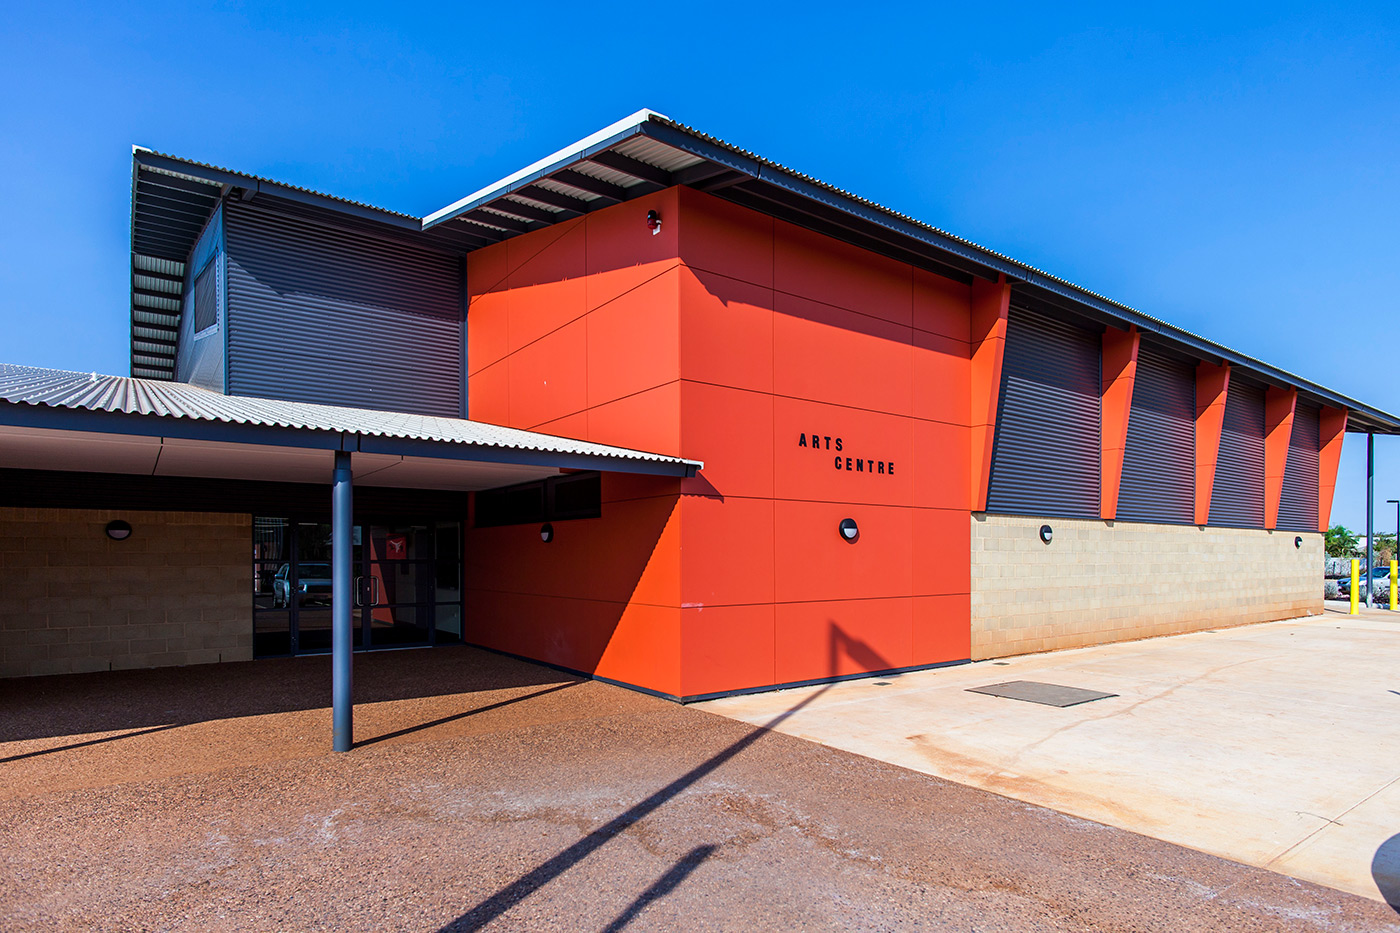 Broome Senior High School : Image 4